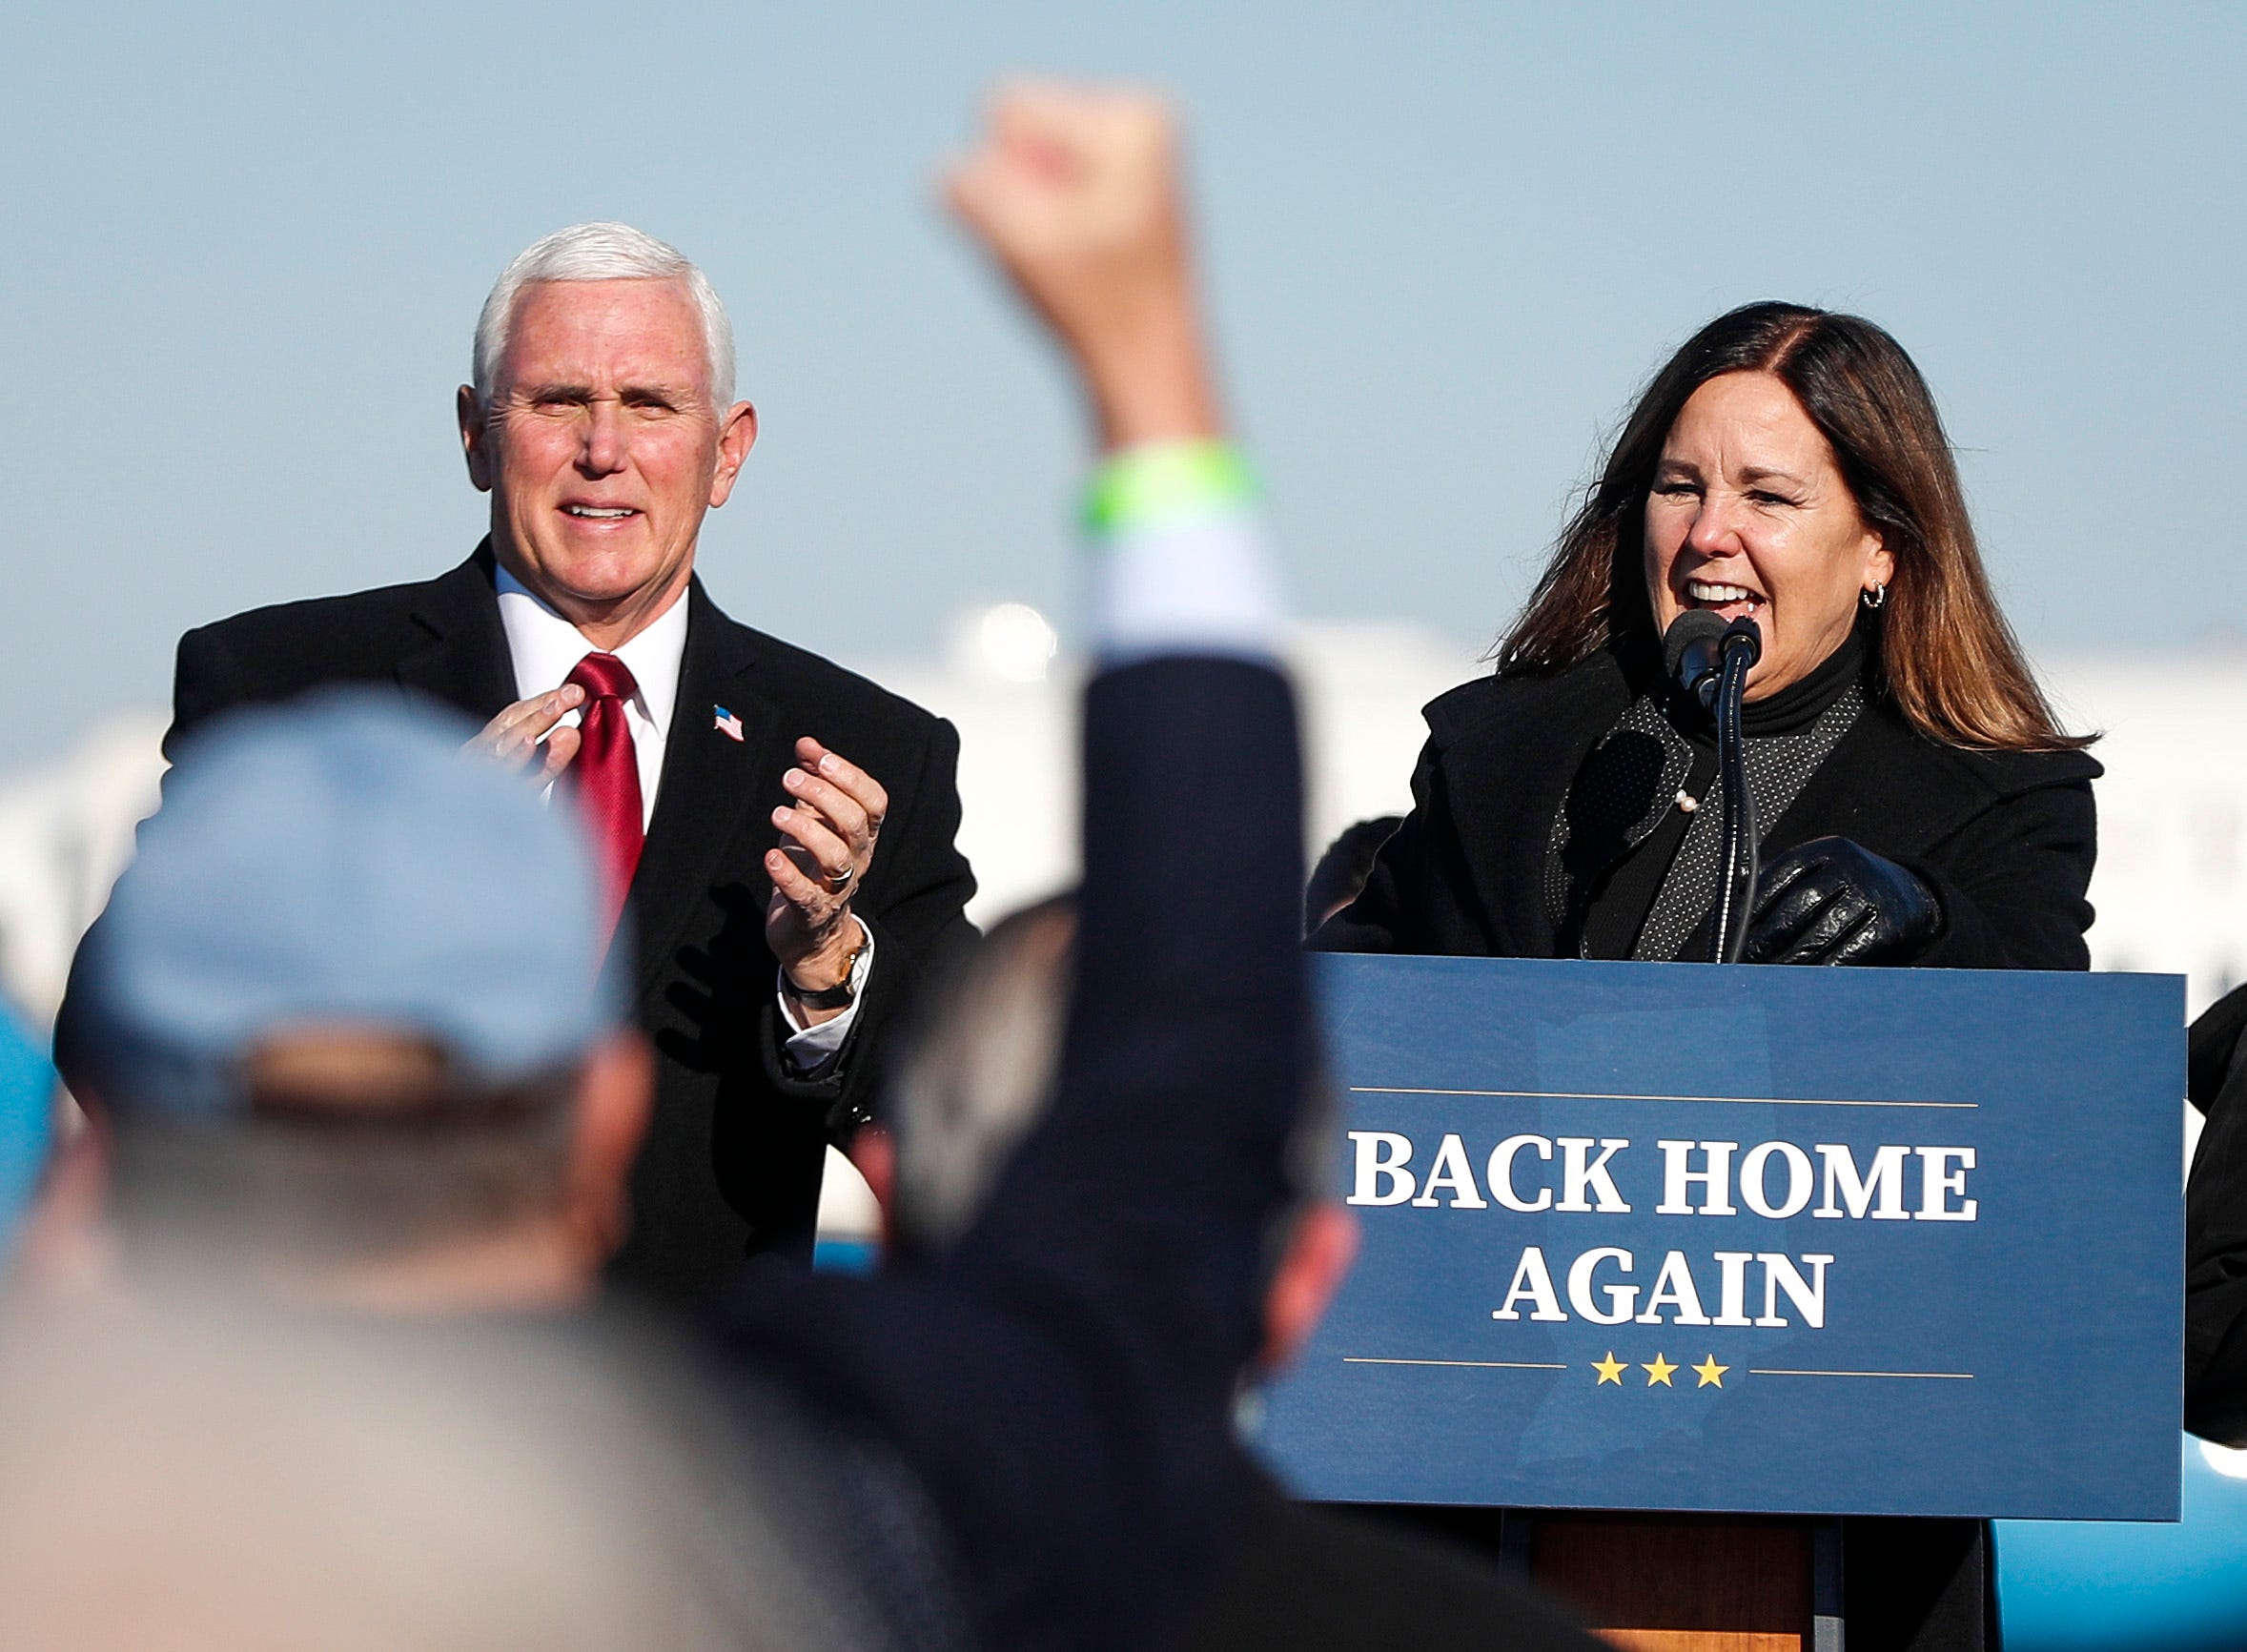 Exclusive:  No place like home,  Karen Pence says of moving back to Indiana